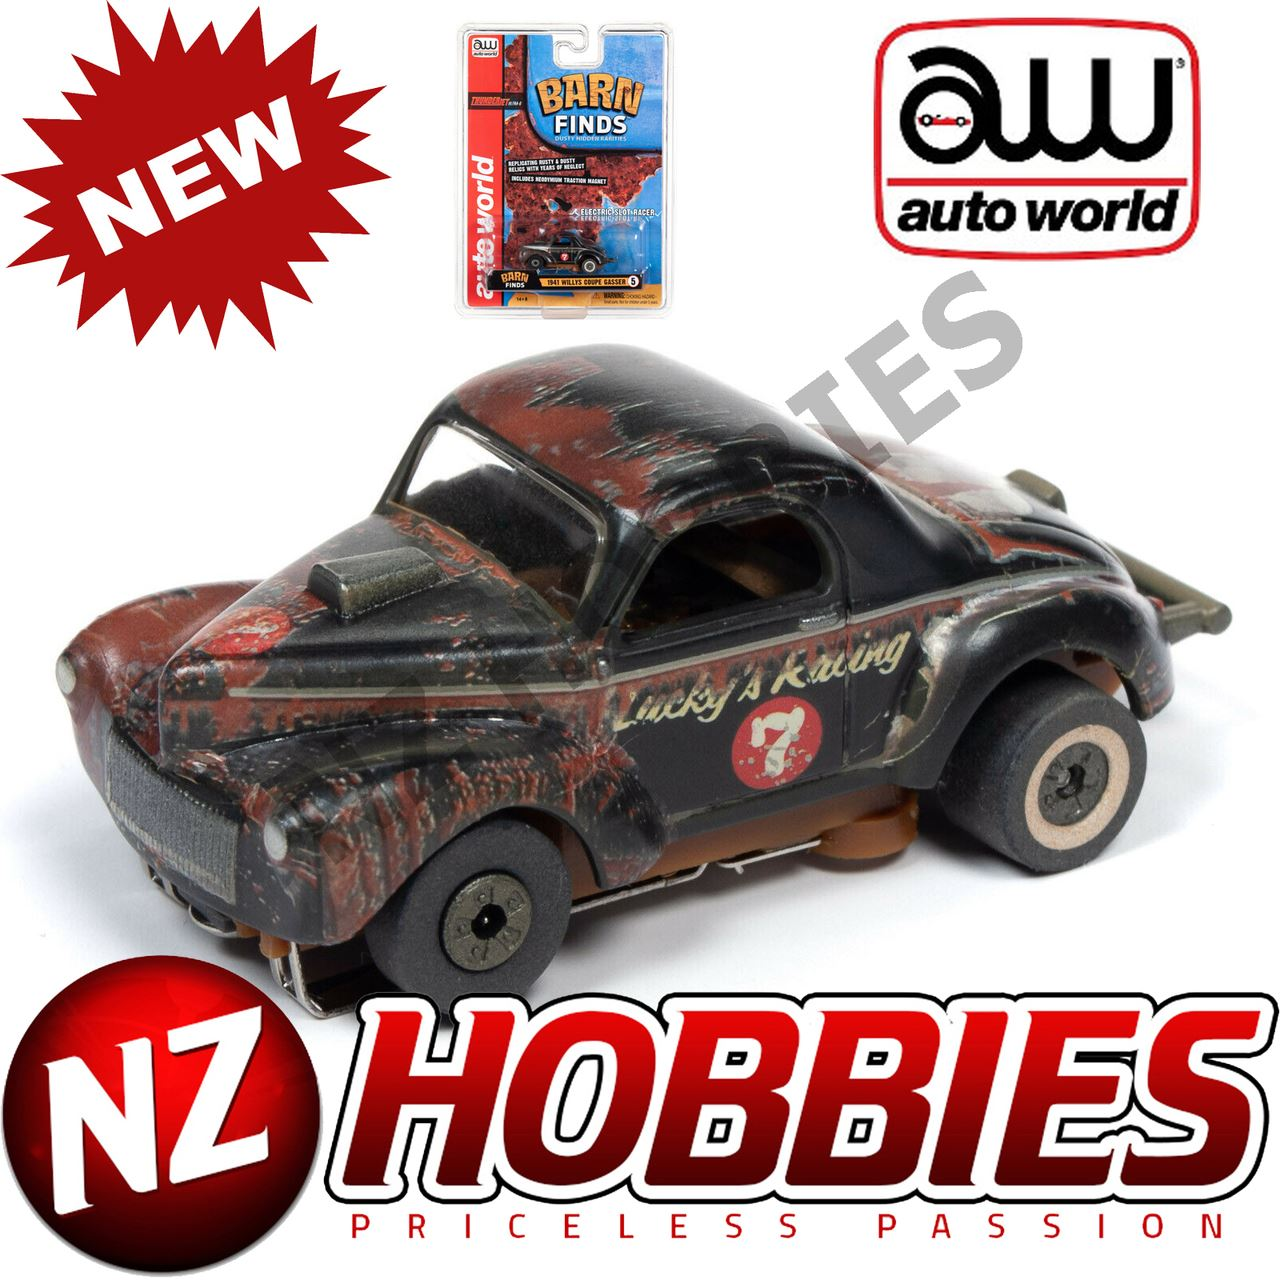 AUTO WORLD SC345 BARN FINDS 1941 WILLYS GASSER THUNDERJETS ...